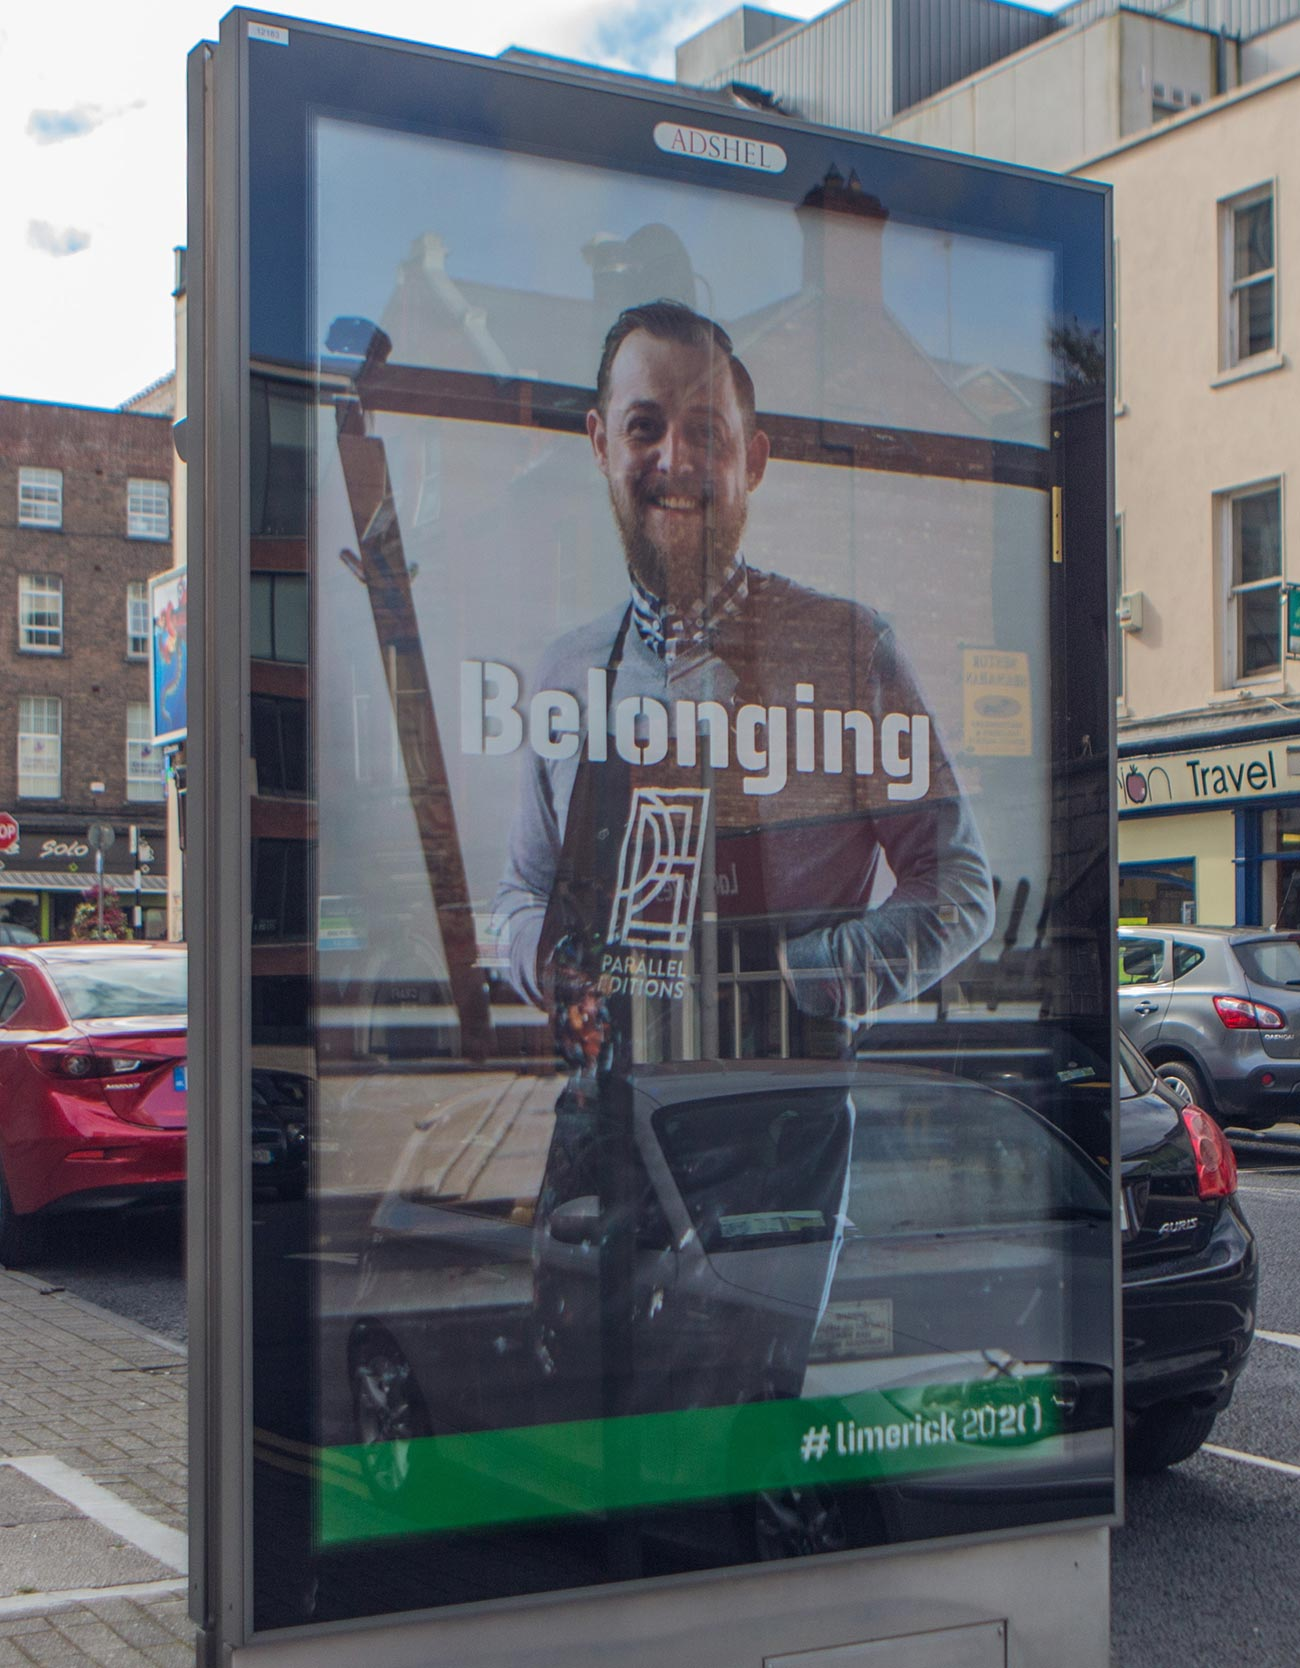 Limerick2020 Campaign Outdoor Campaign